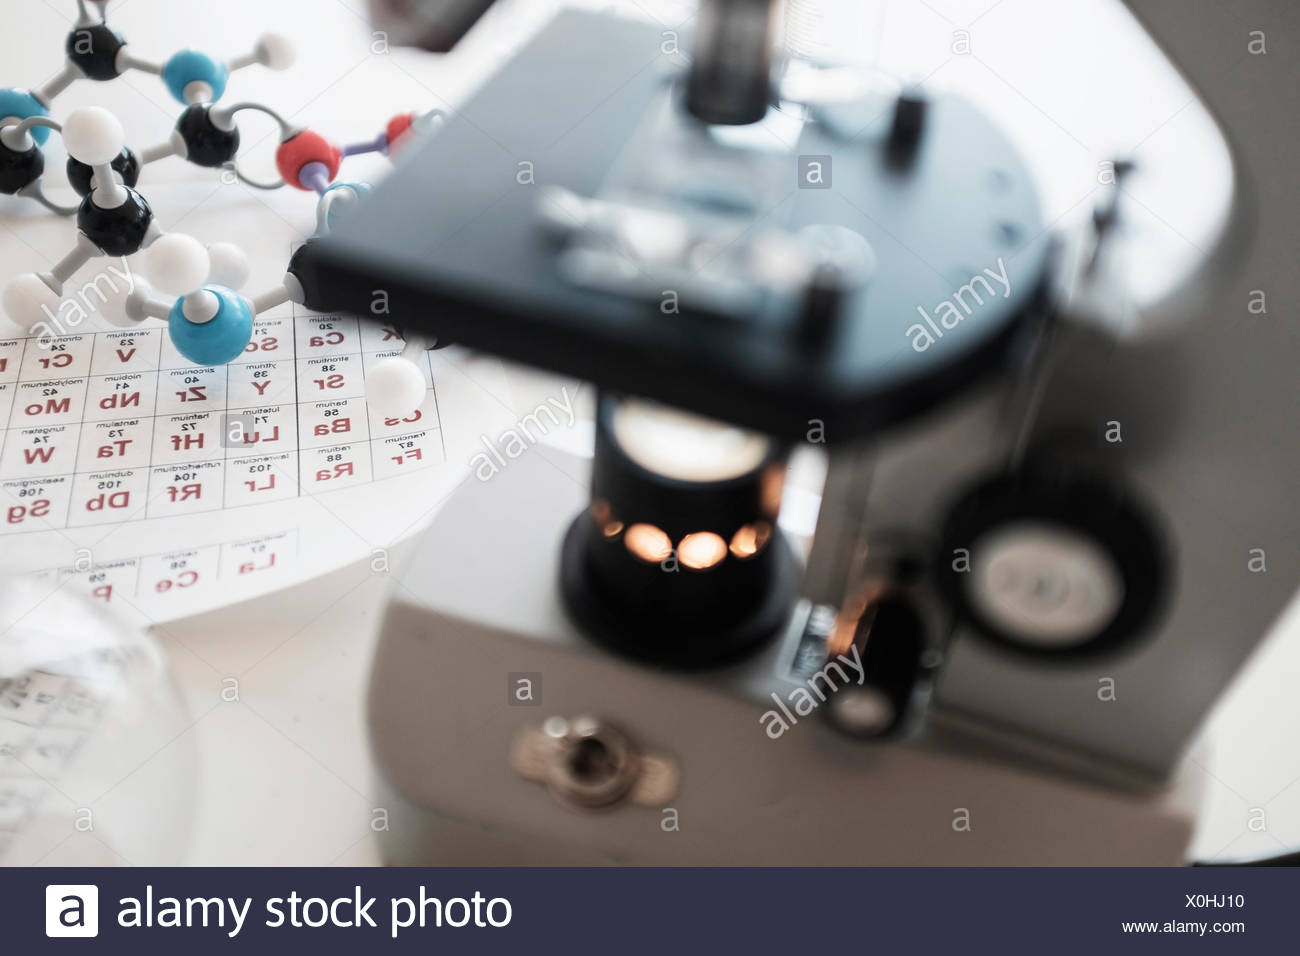 Terrific Periodic Table And Microscope On Desk Stock Photo 275753212 Beutiful Home Inspiration Truamahrainfo